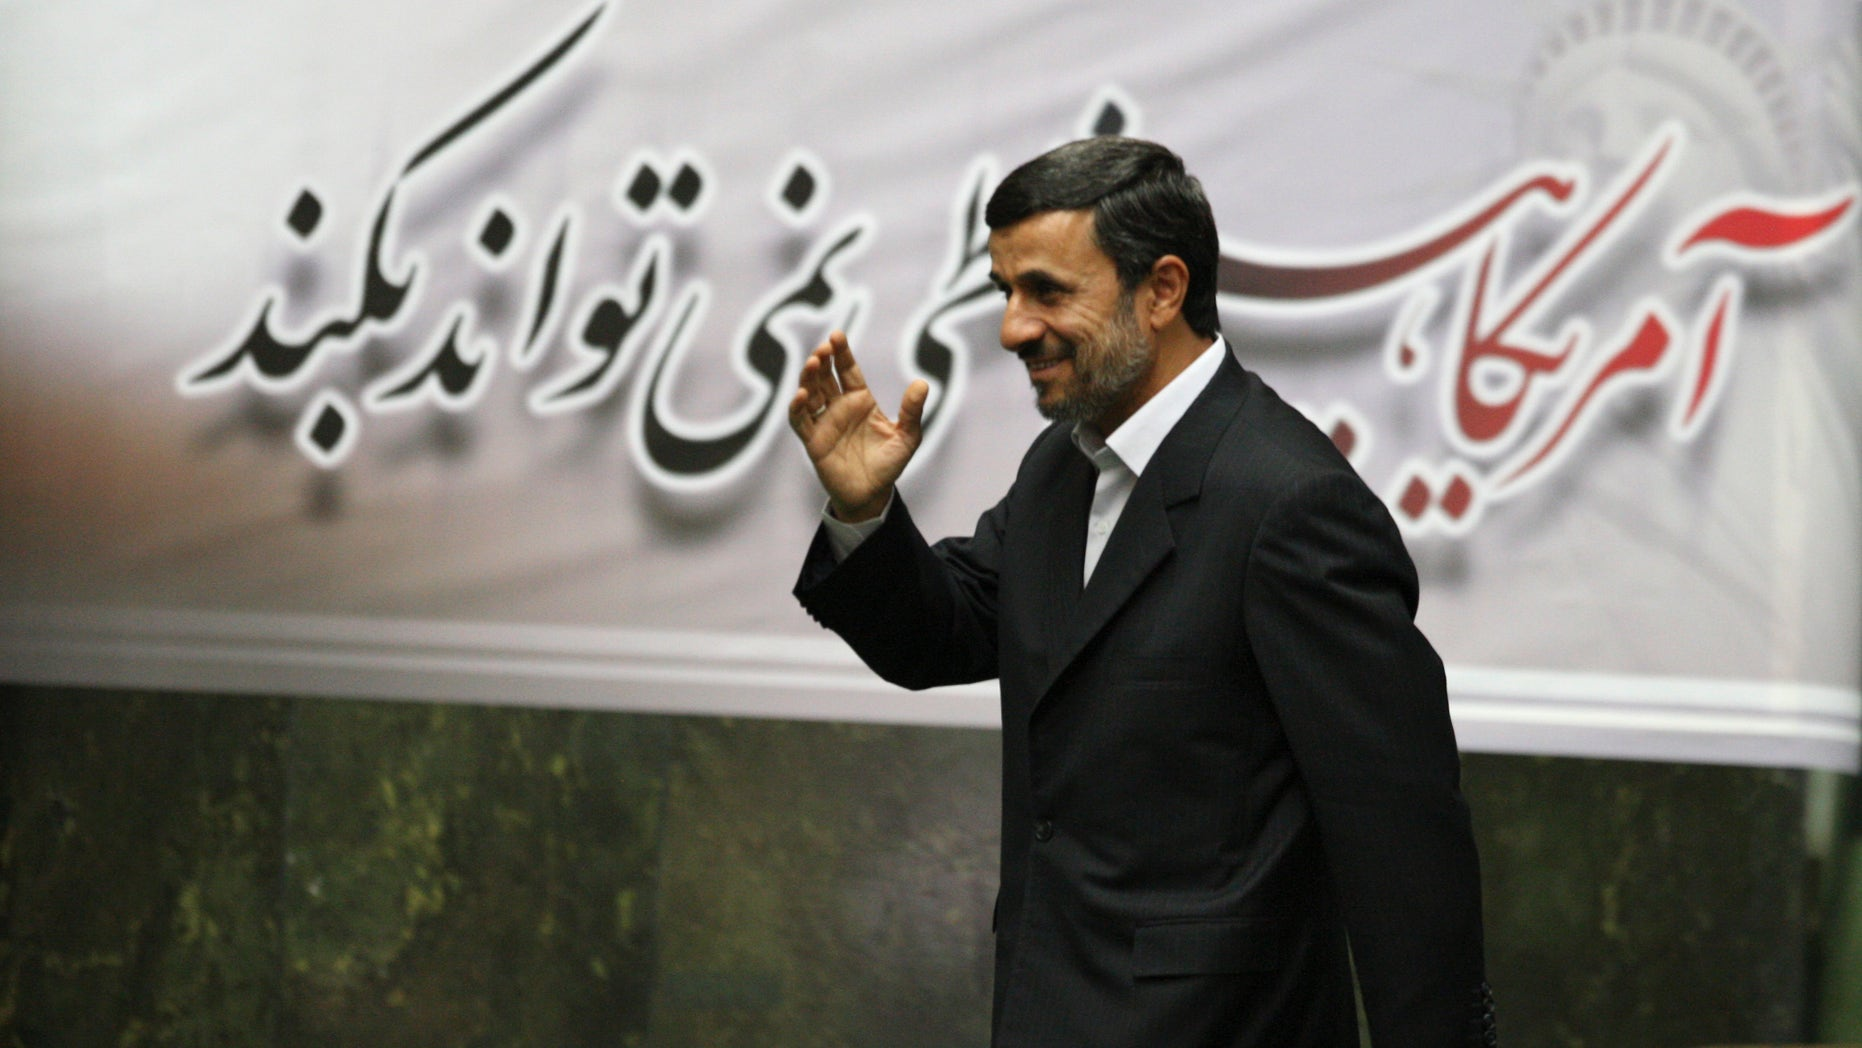 """Nov. 2, 2011: Iranian President Mahmoud Ahmadinejad, waves, as he arrives to attend an open session of parliament for impeachment of his Economy Minister, Shamsoddin Hosseini, unseen, as a banner hangs behind him with a quotation of late revolutionary founder Ayatollah Khomeini, which says """"US can not do anything"""", in Tehran, Iran."""